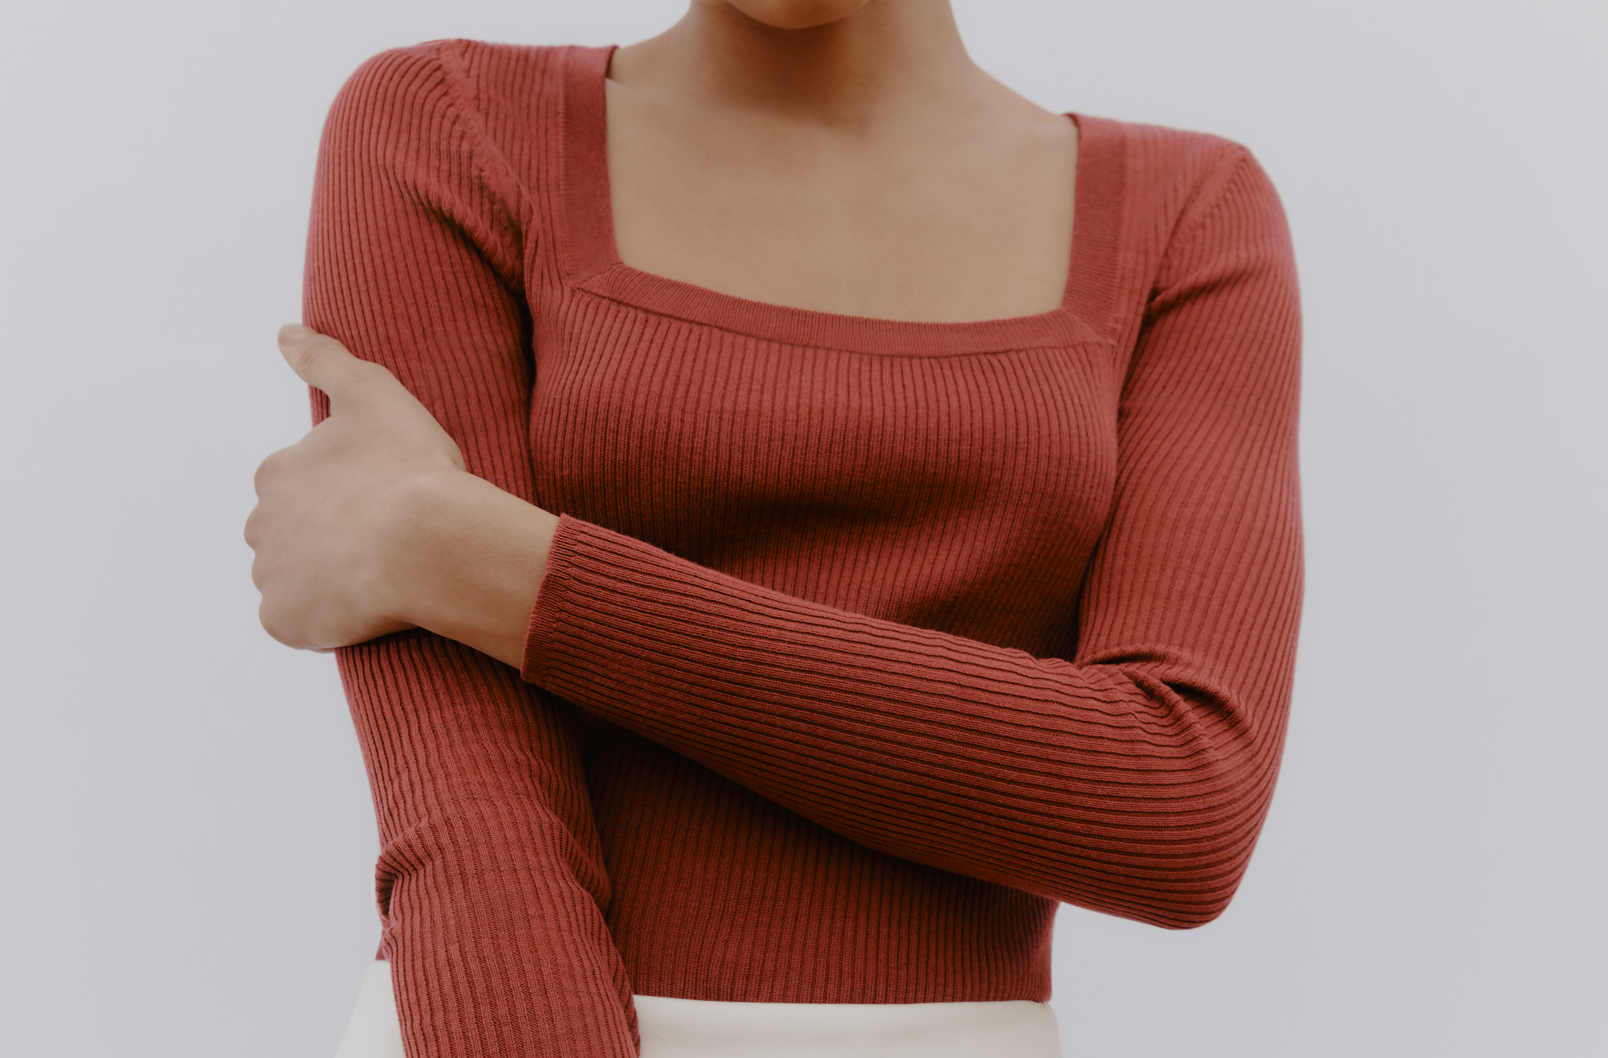 Model wearing Cotton Cashmere Square Neck Rib Sweater